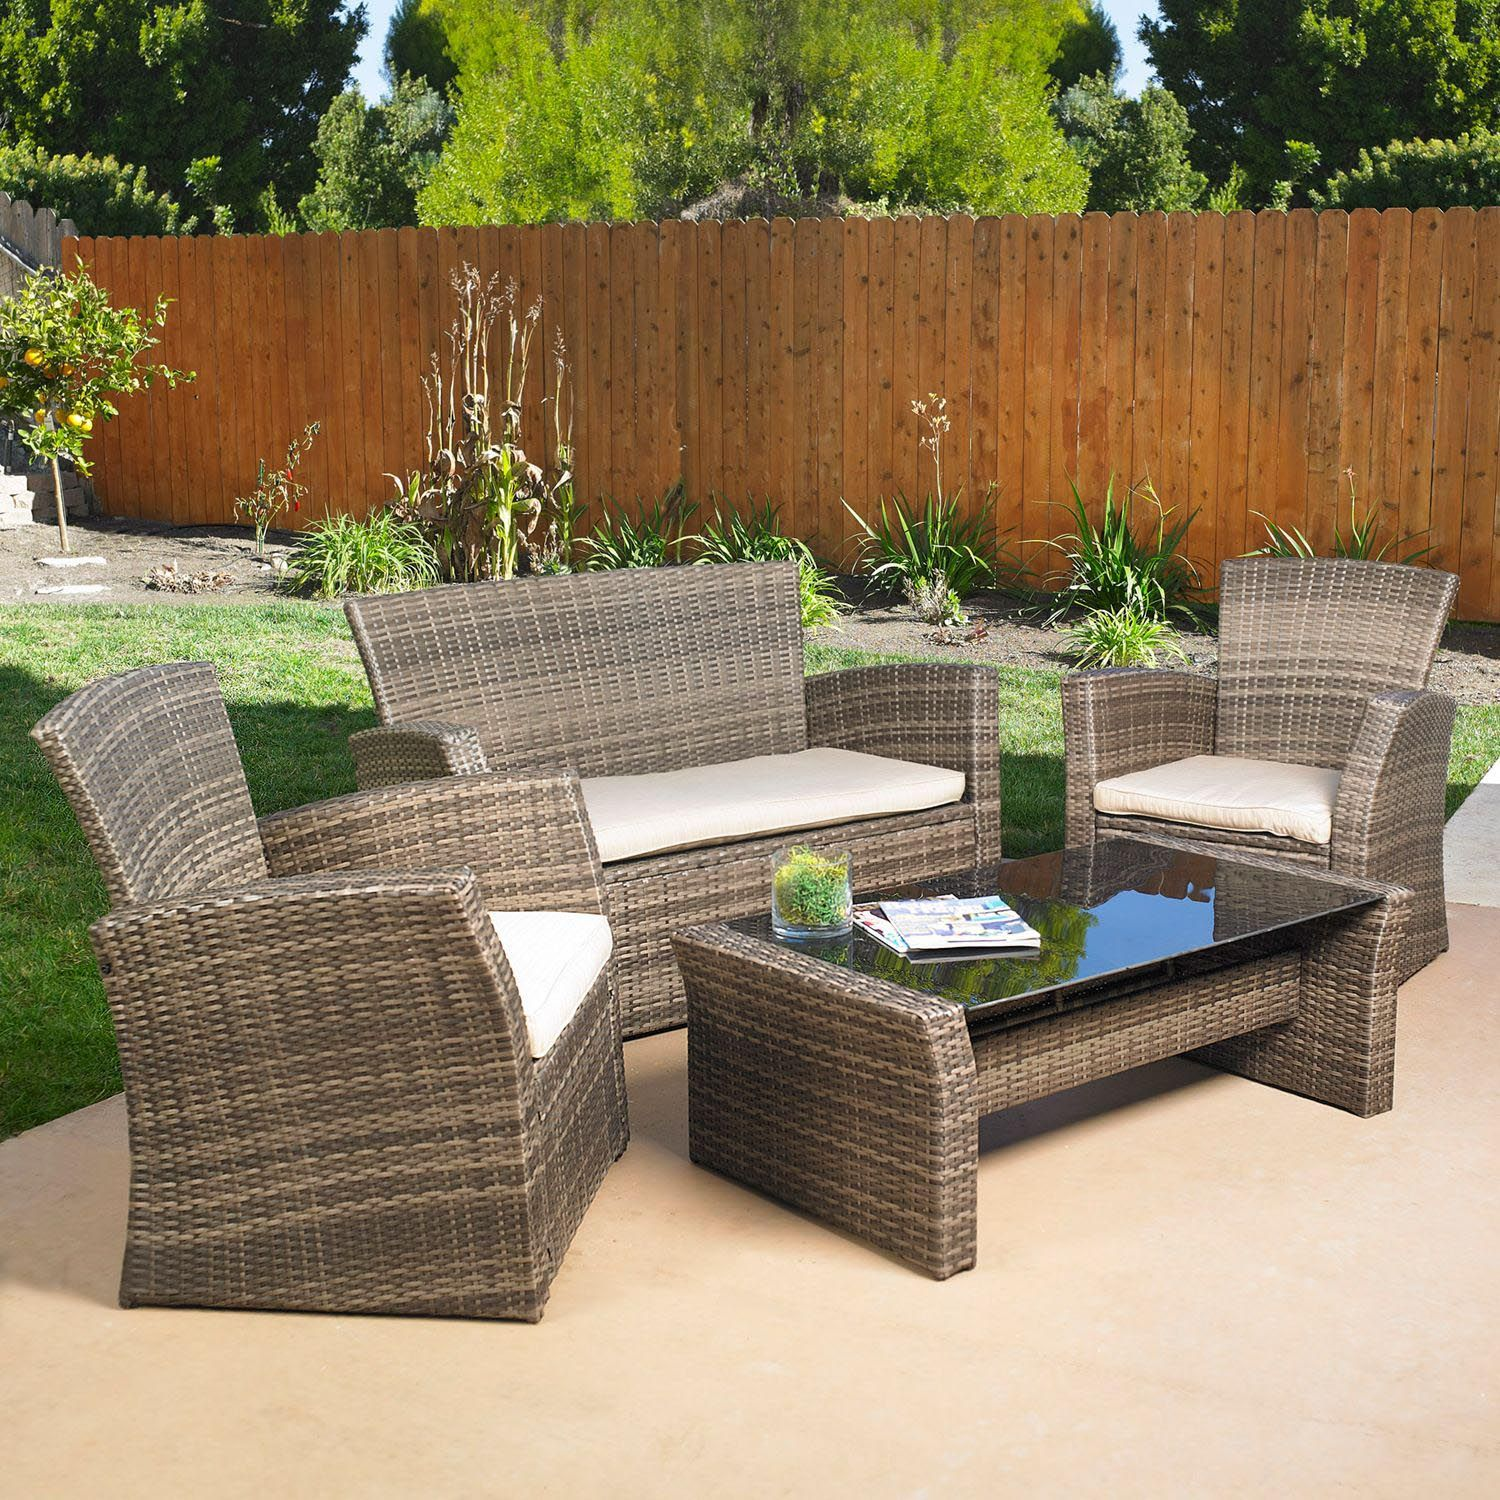 Mission Style Patio Furniture - Mission Style Patio Furniture Furniture Pinterest Mission